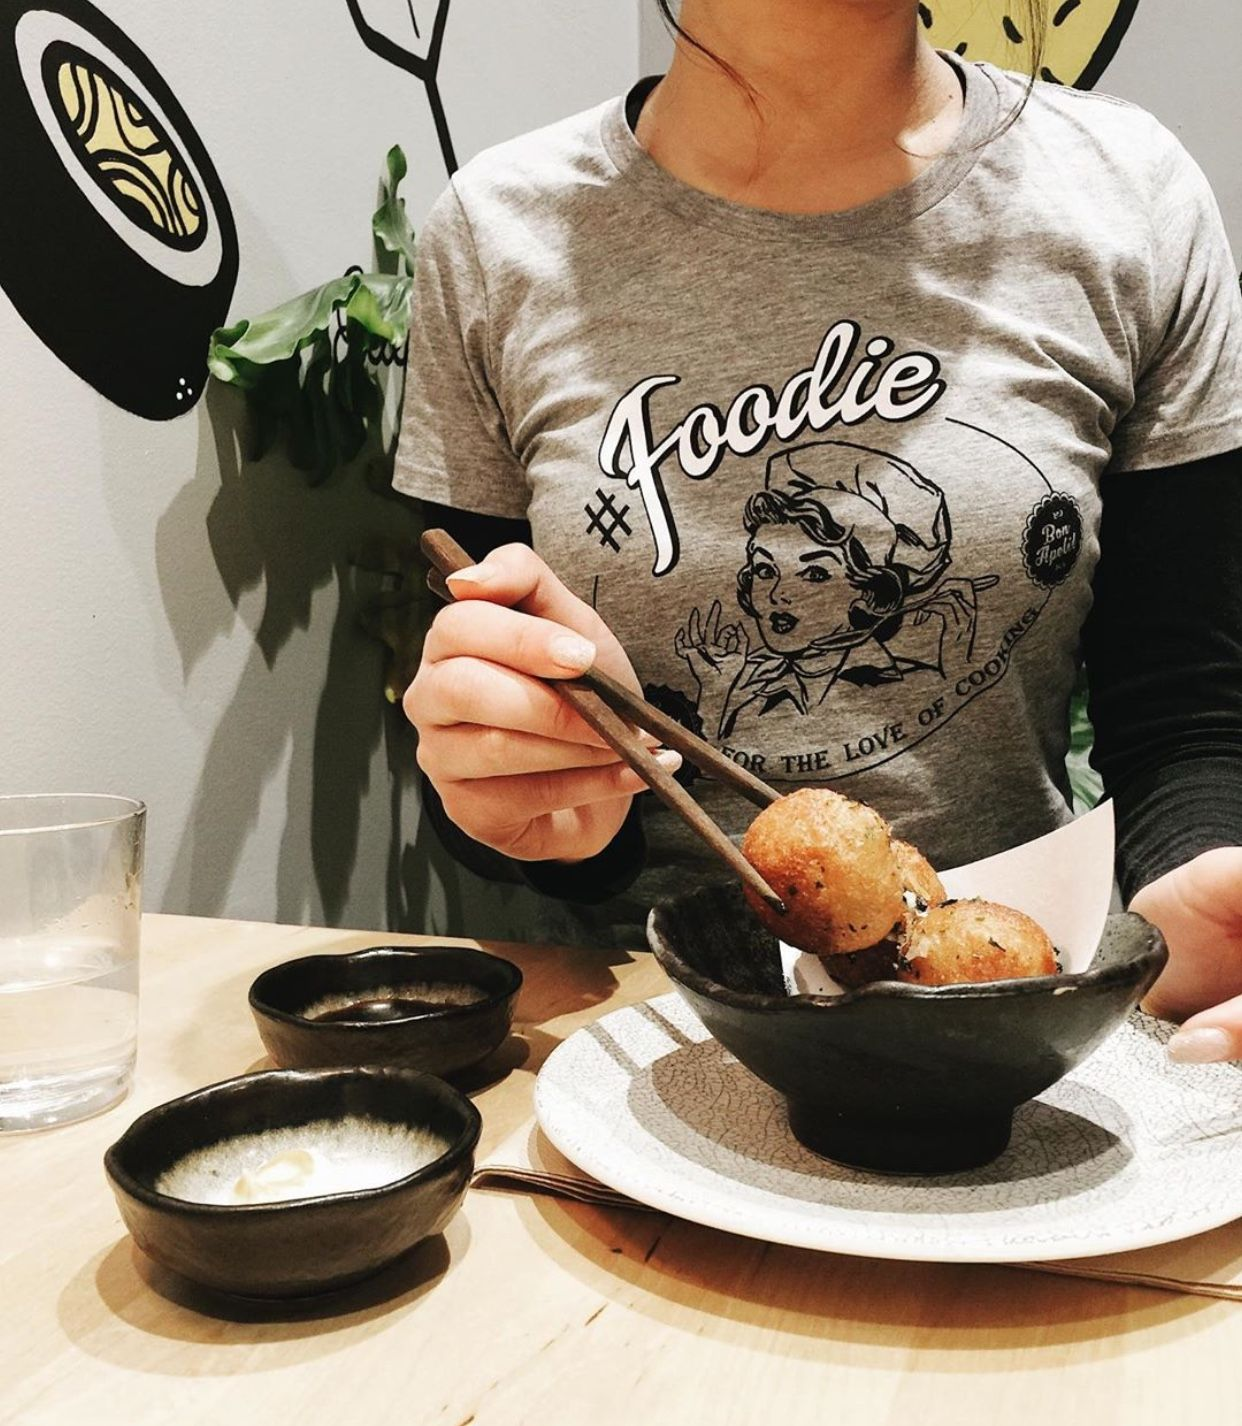 The best Foodlover t-shirt for the Foodie this Festive Season. It's a gift they'll wear all day long for foodies eat all day long. #foodie #foodlover #xmasgiftidea #christmasgiftidea #japanesefood #takoyaki #foodstagrammer #festivefeasting #foodideas #womenstees #melbournestyle